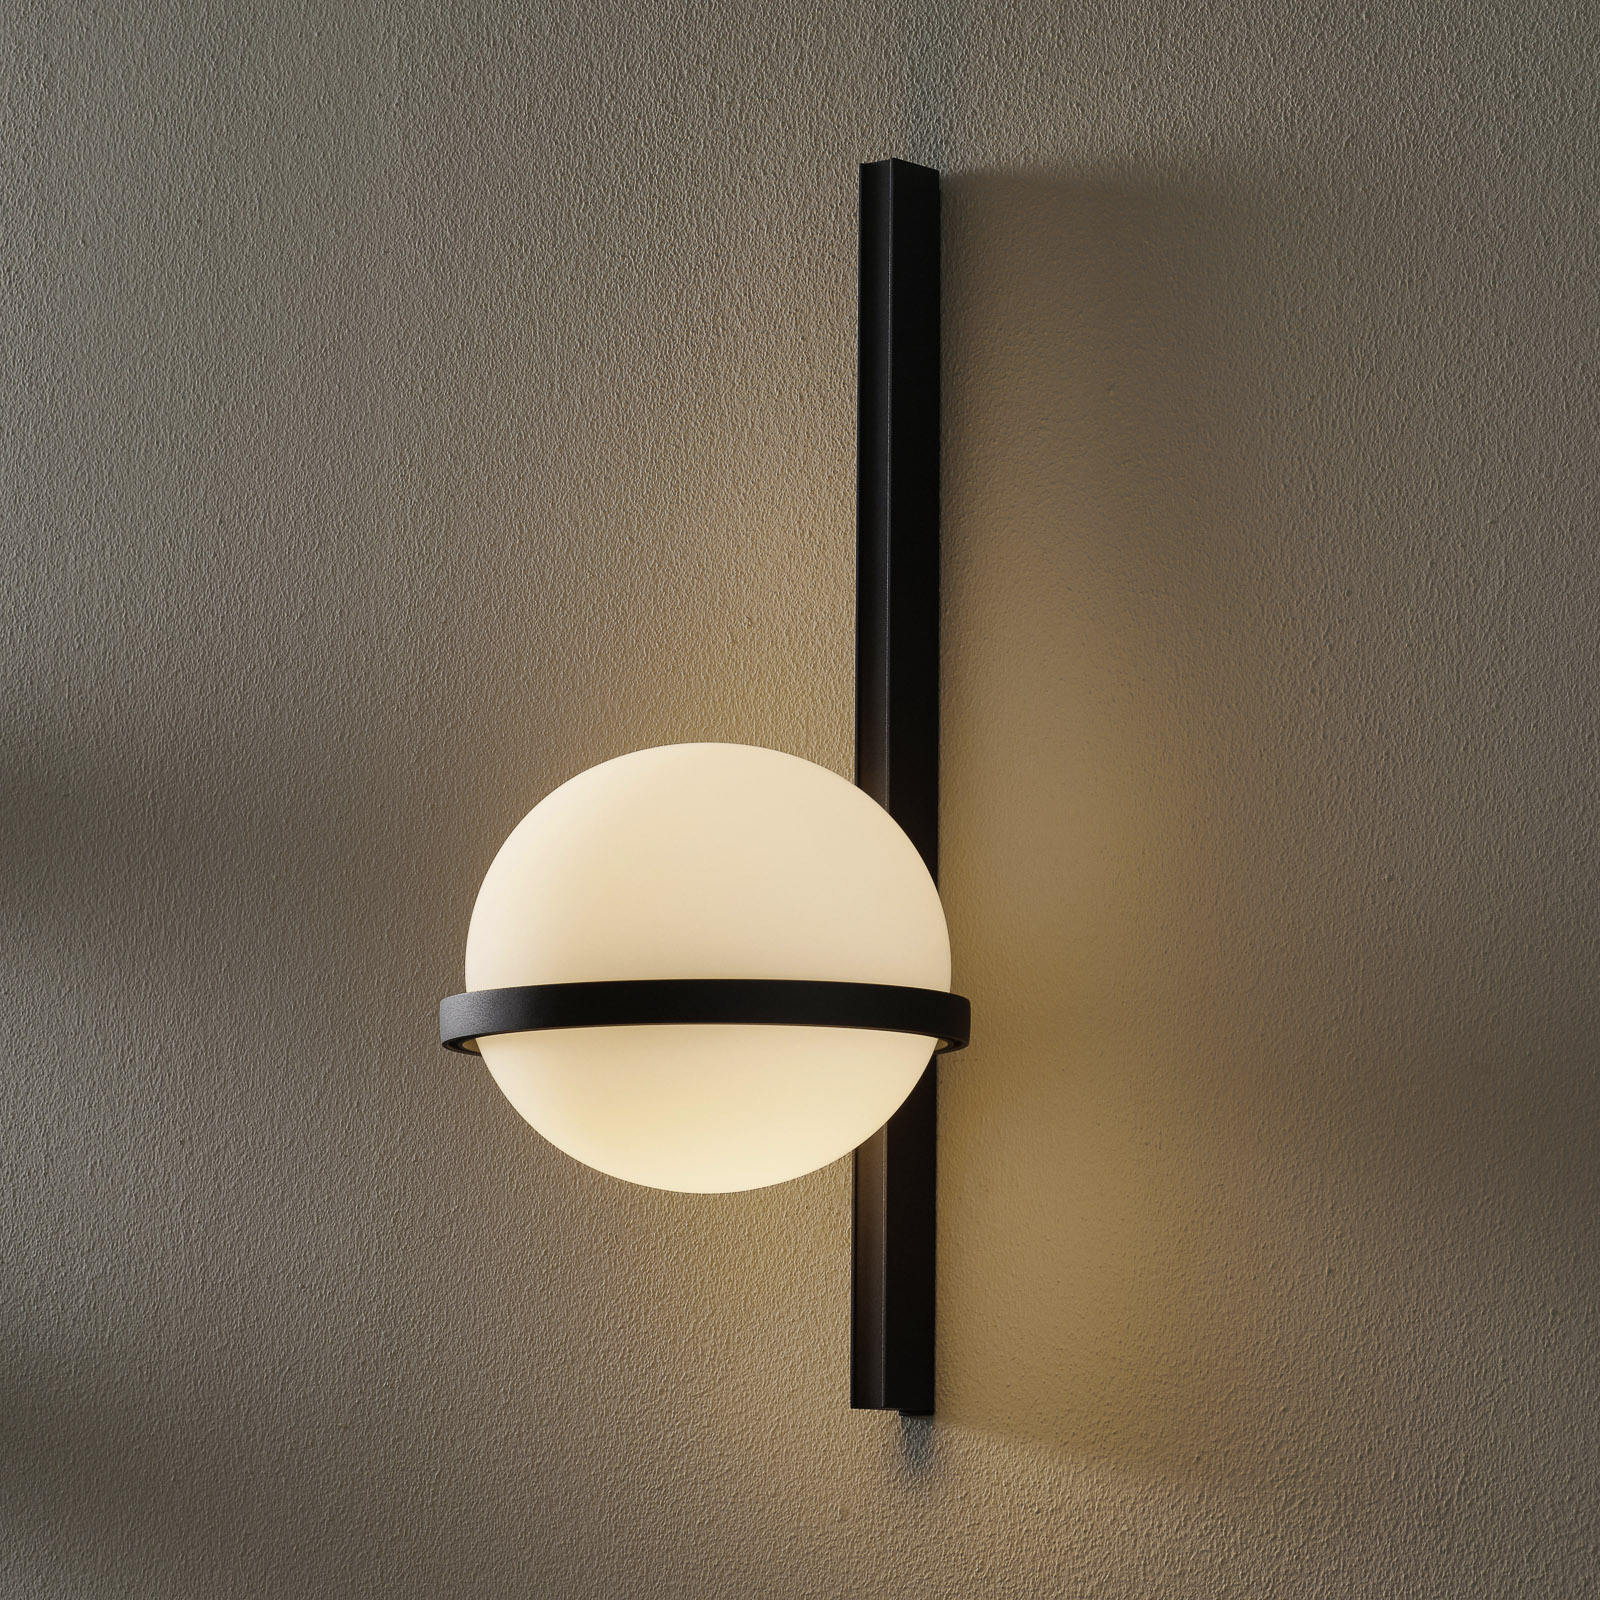 Vibia Palma 3710 applique LED, graphite